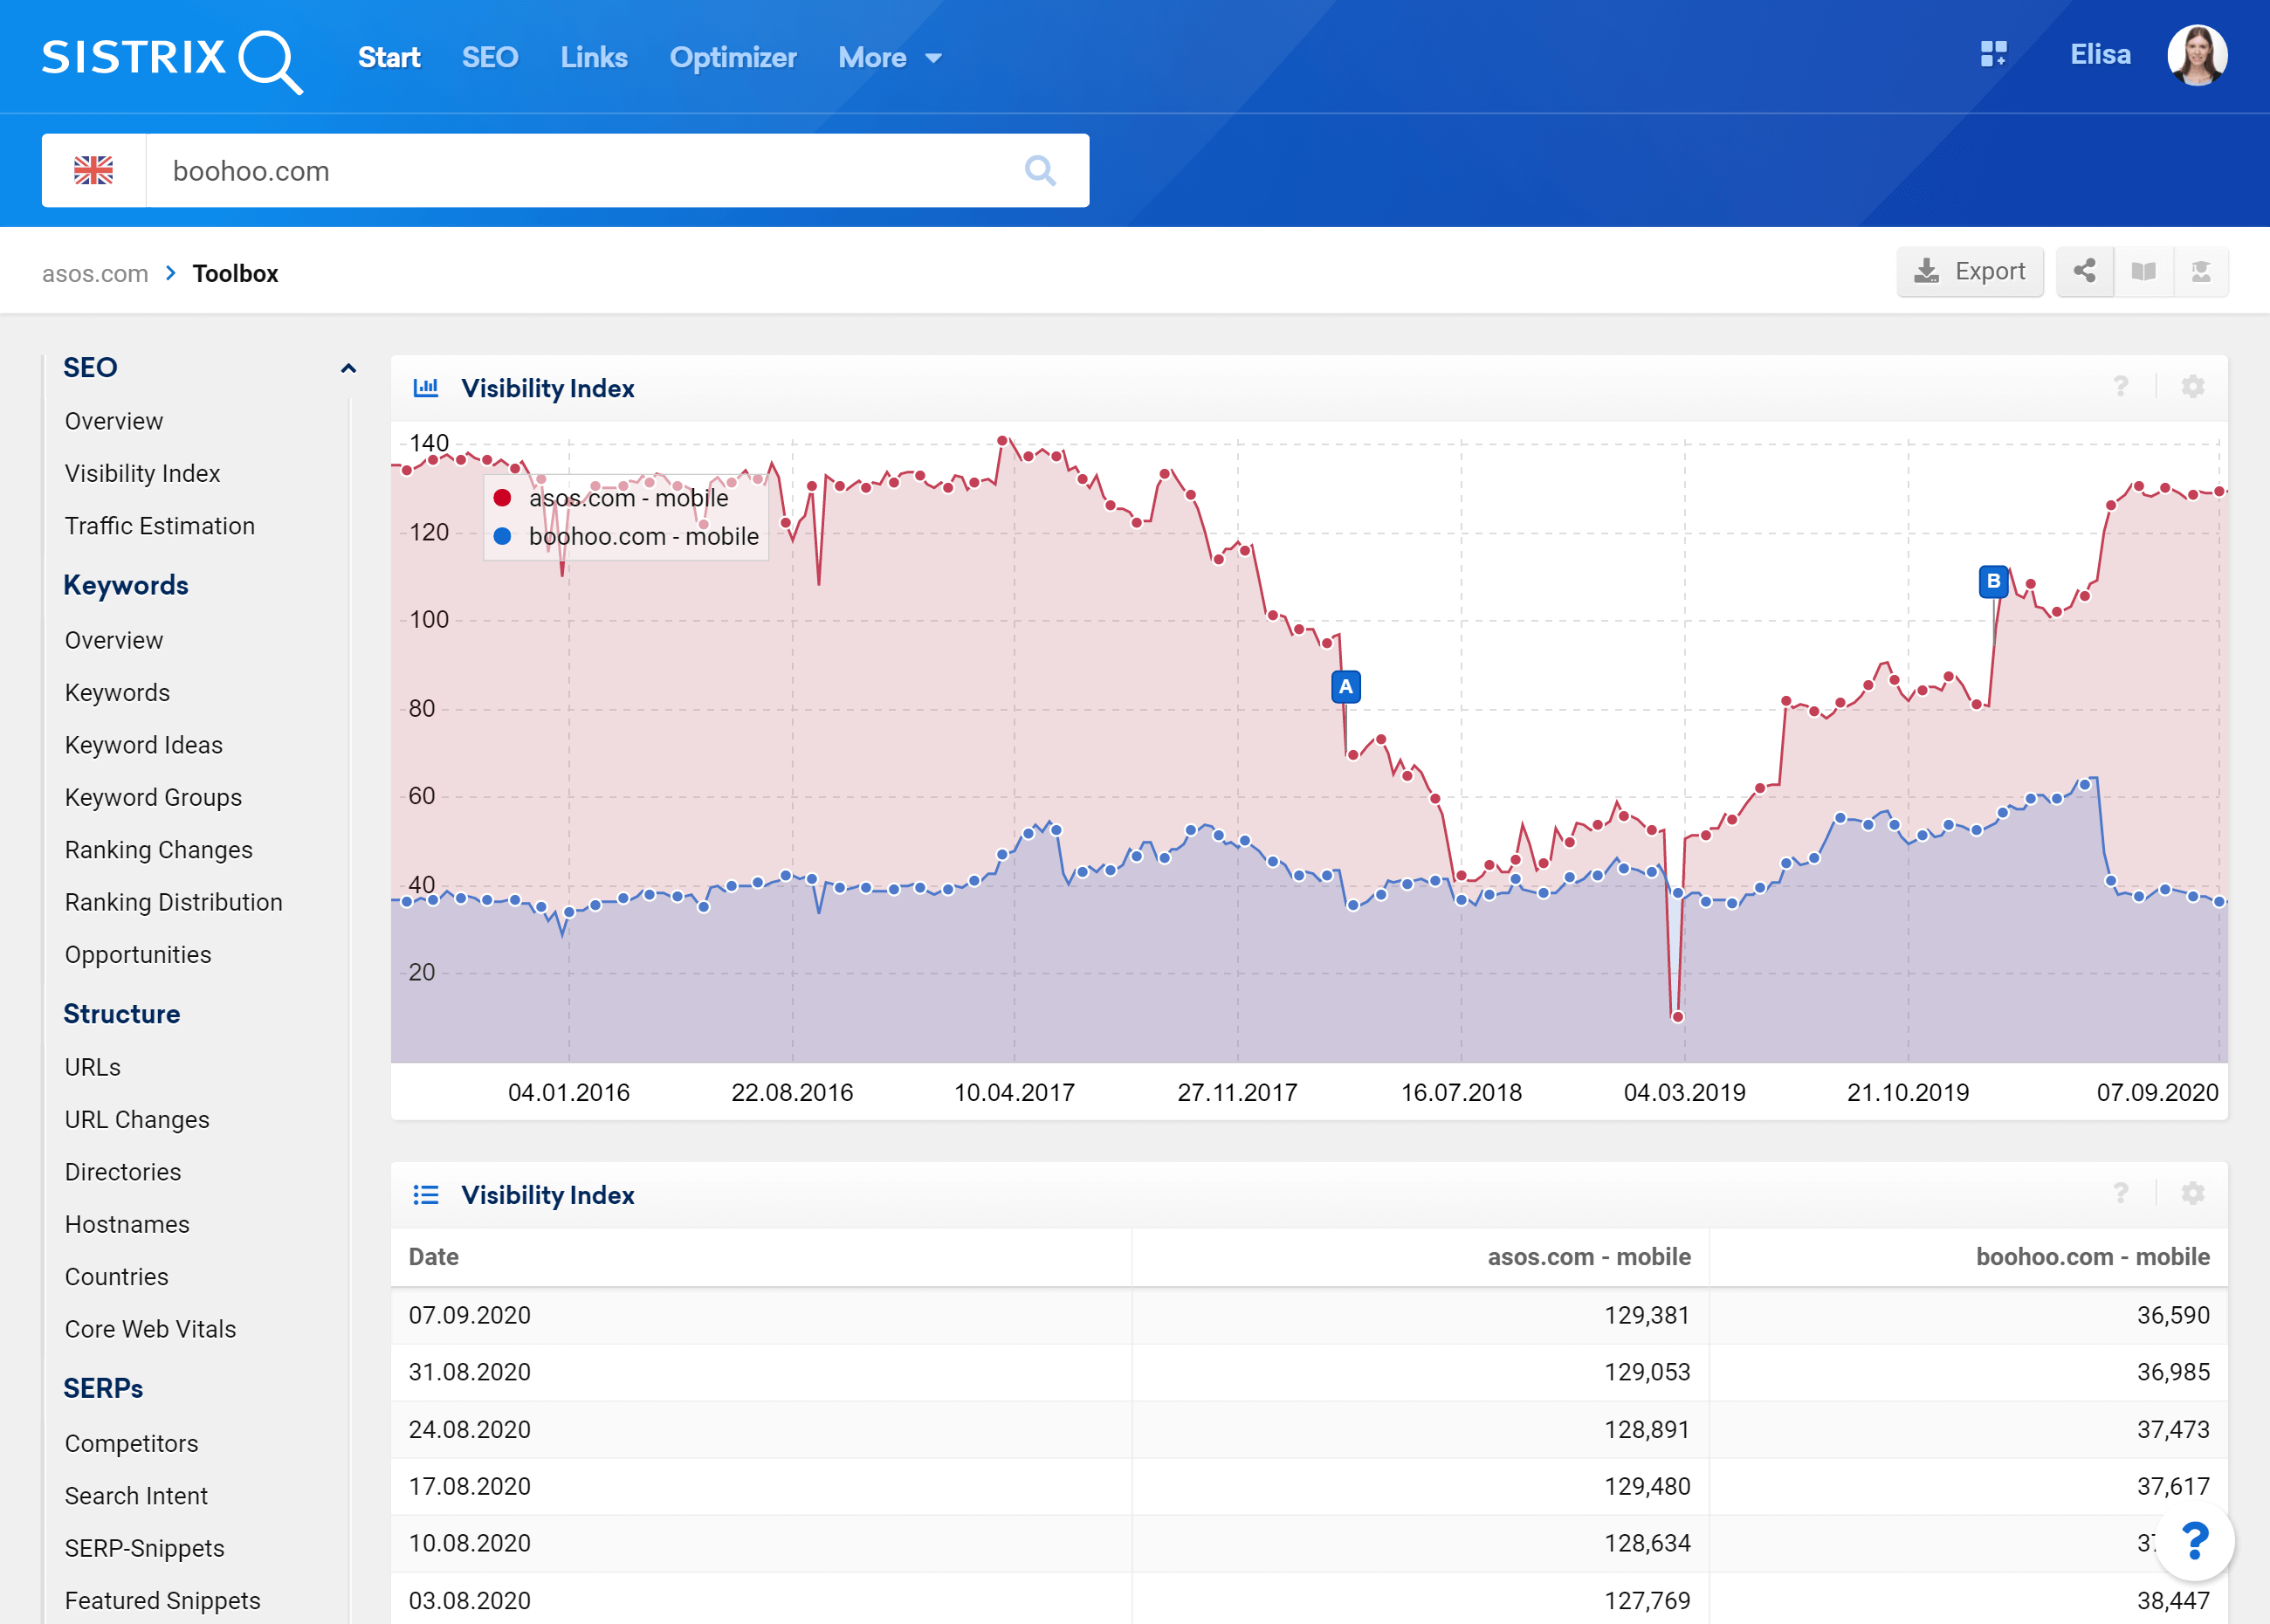 Comparison of two Visibility Indexes in SISTRIX